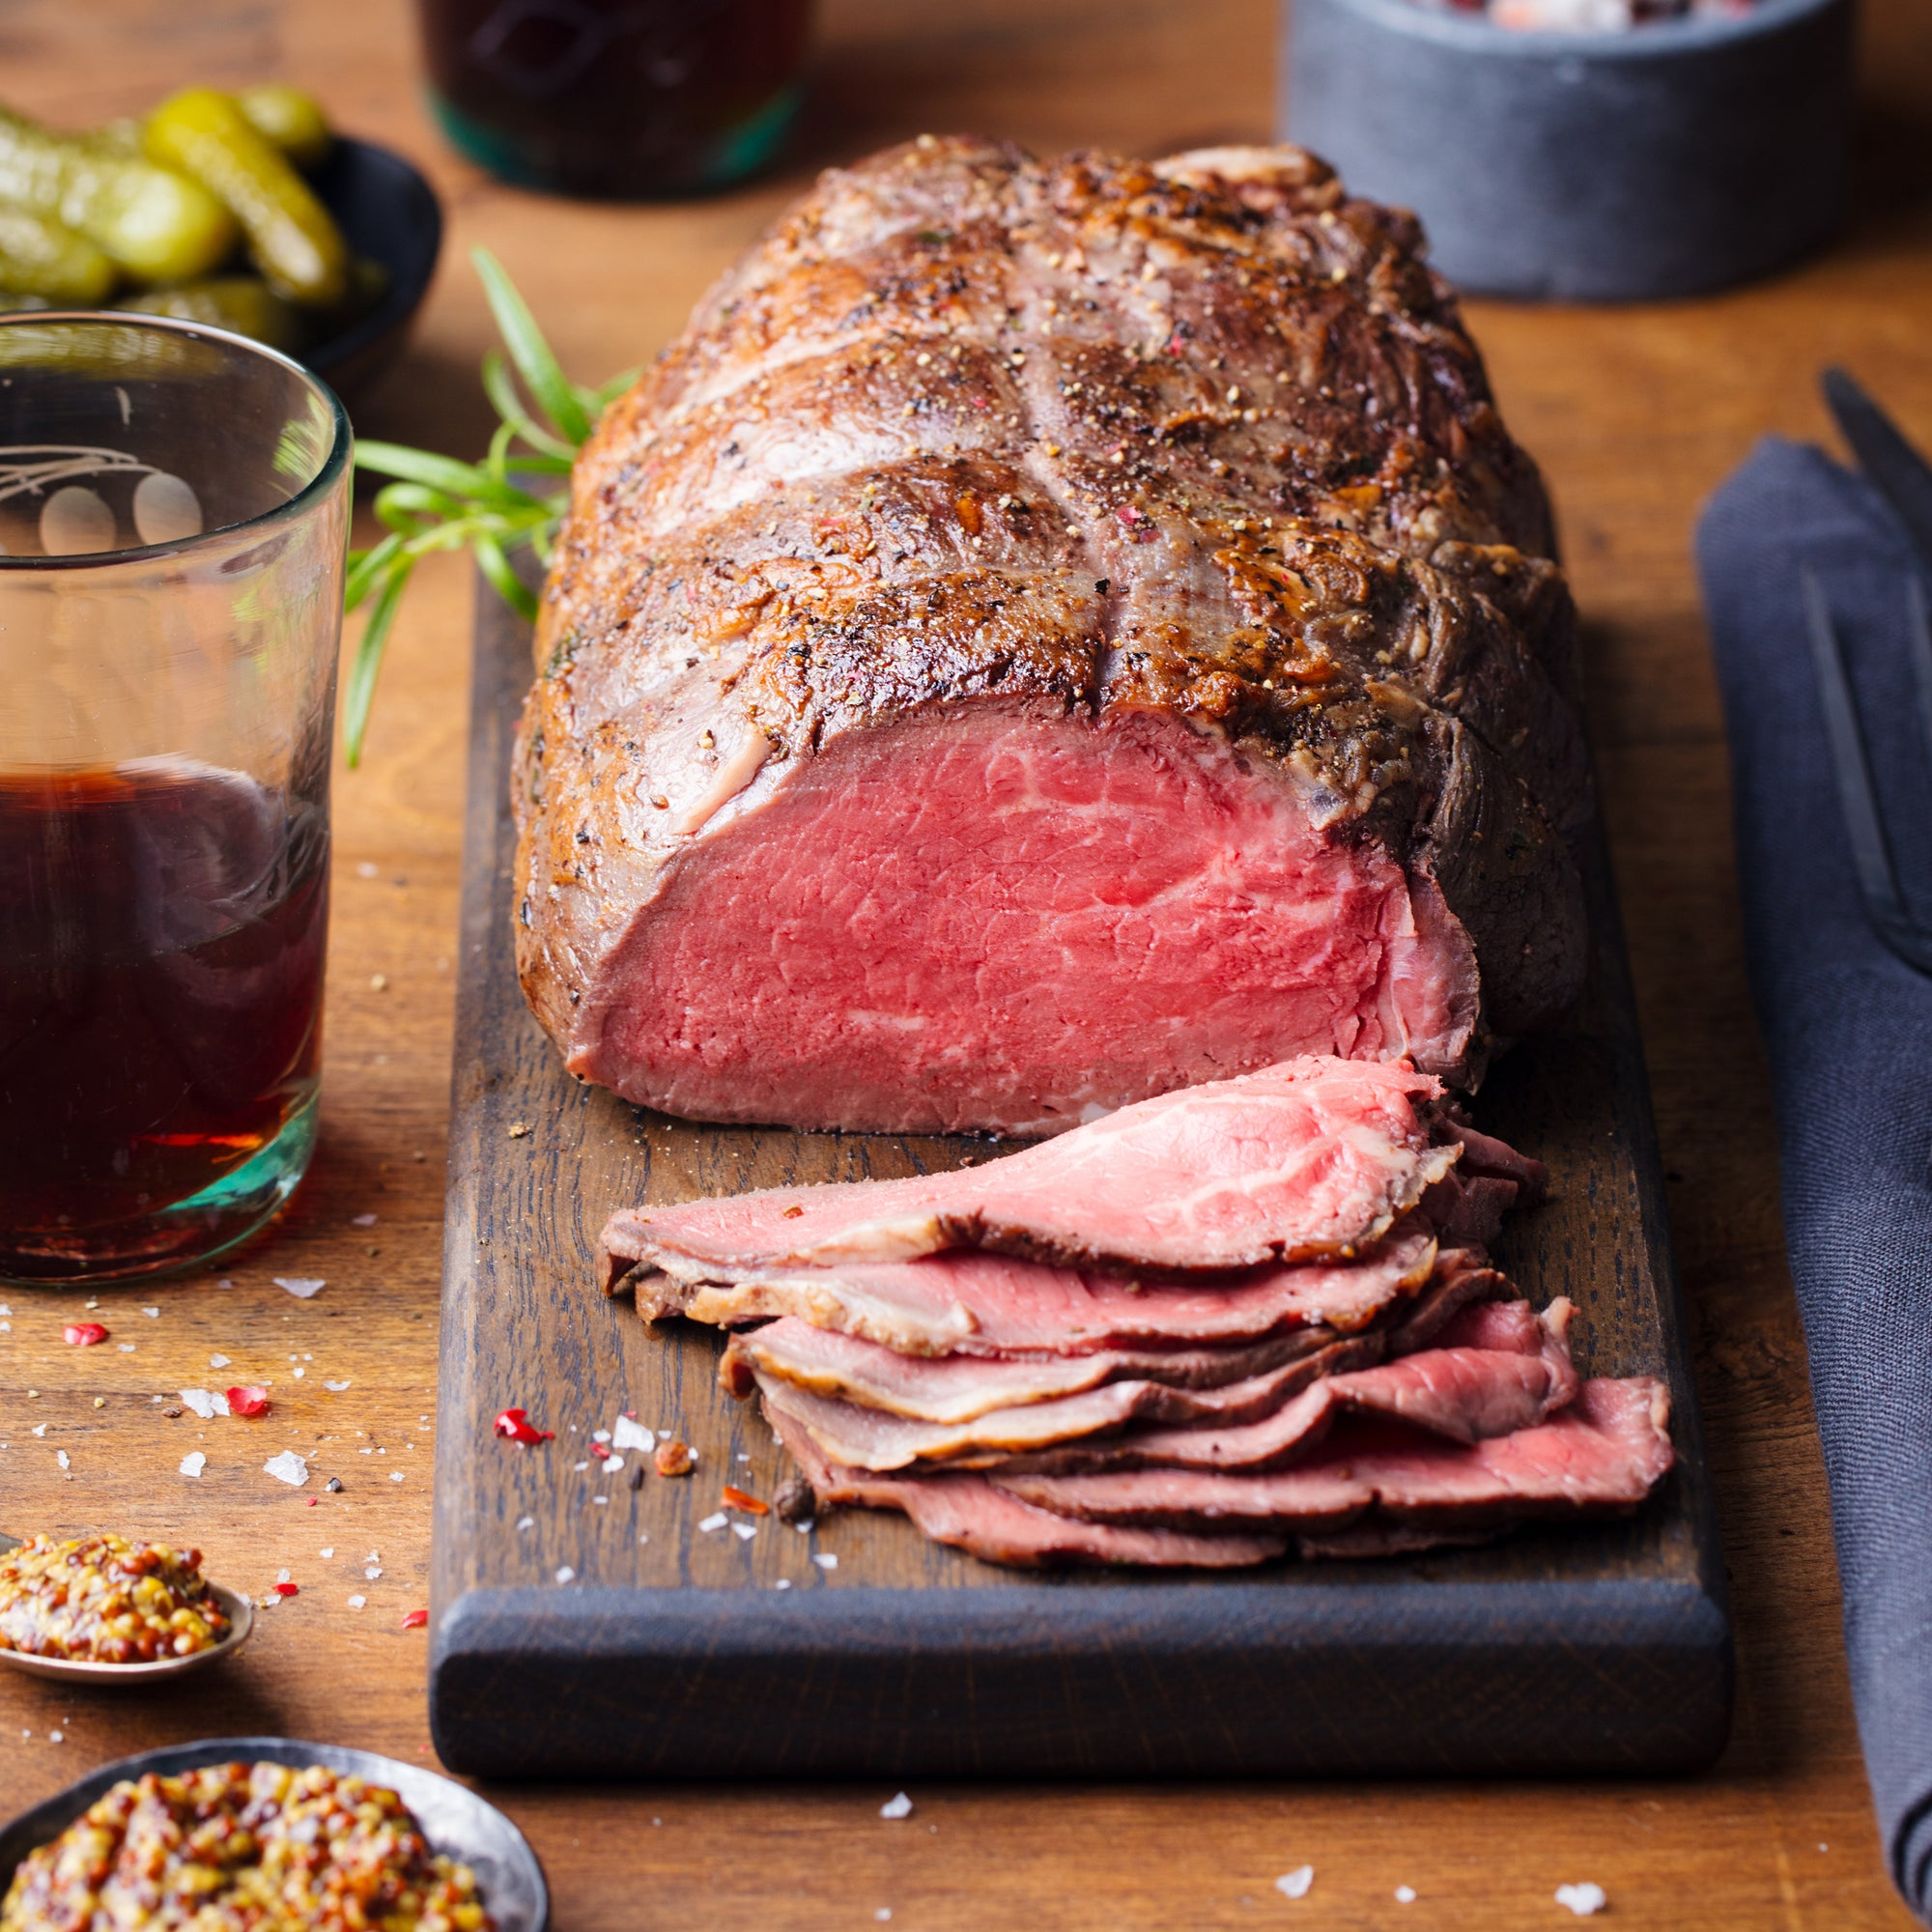 16. ROAST ANGUS BEEF (200 DAY GRAIN-FED) WITH RED WINE JUS - 1KG - Swiss Butchery | A Cut Above | Premium Butchers Since 1994